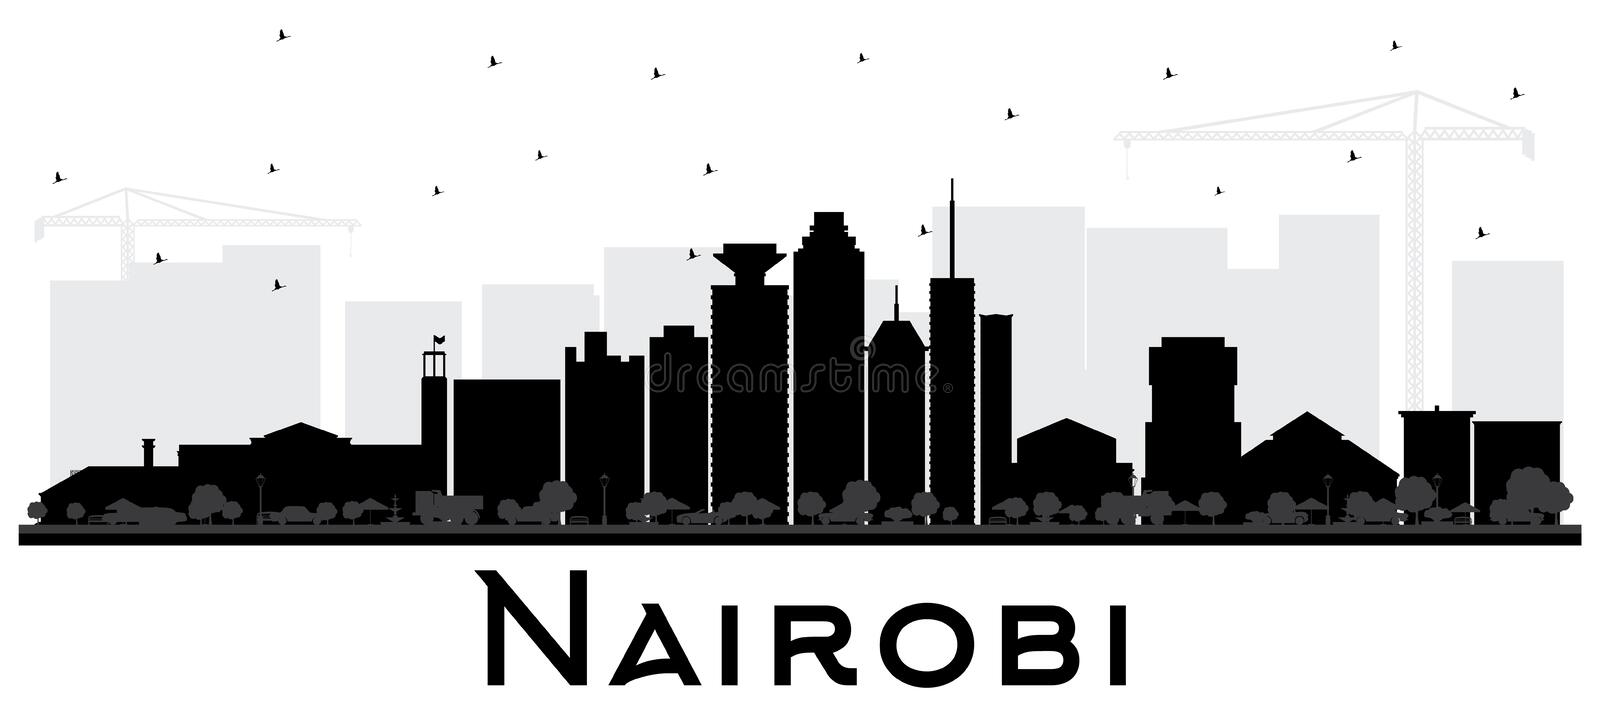 Nairobi Kenya City Skyline Silhouette with Black Buildings Isolated on White. Vector Illustration. Business Travel and Concept with Modern Architecture vector illustration